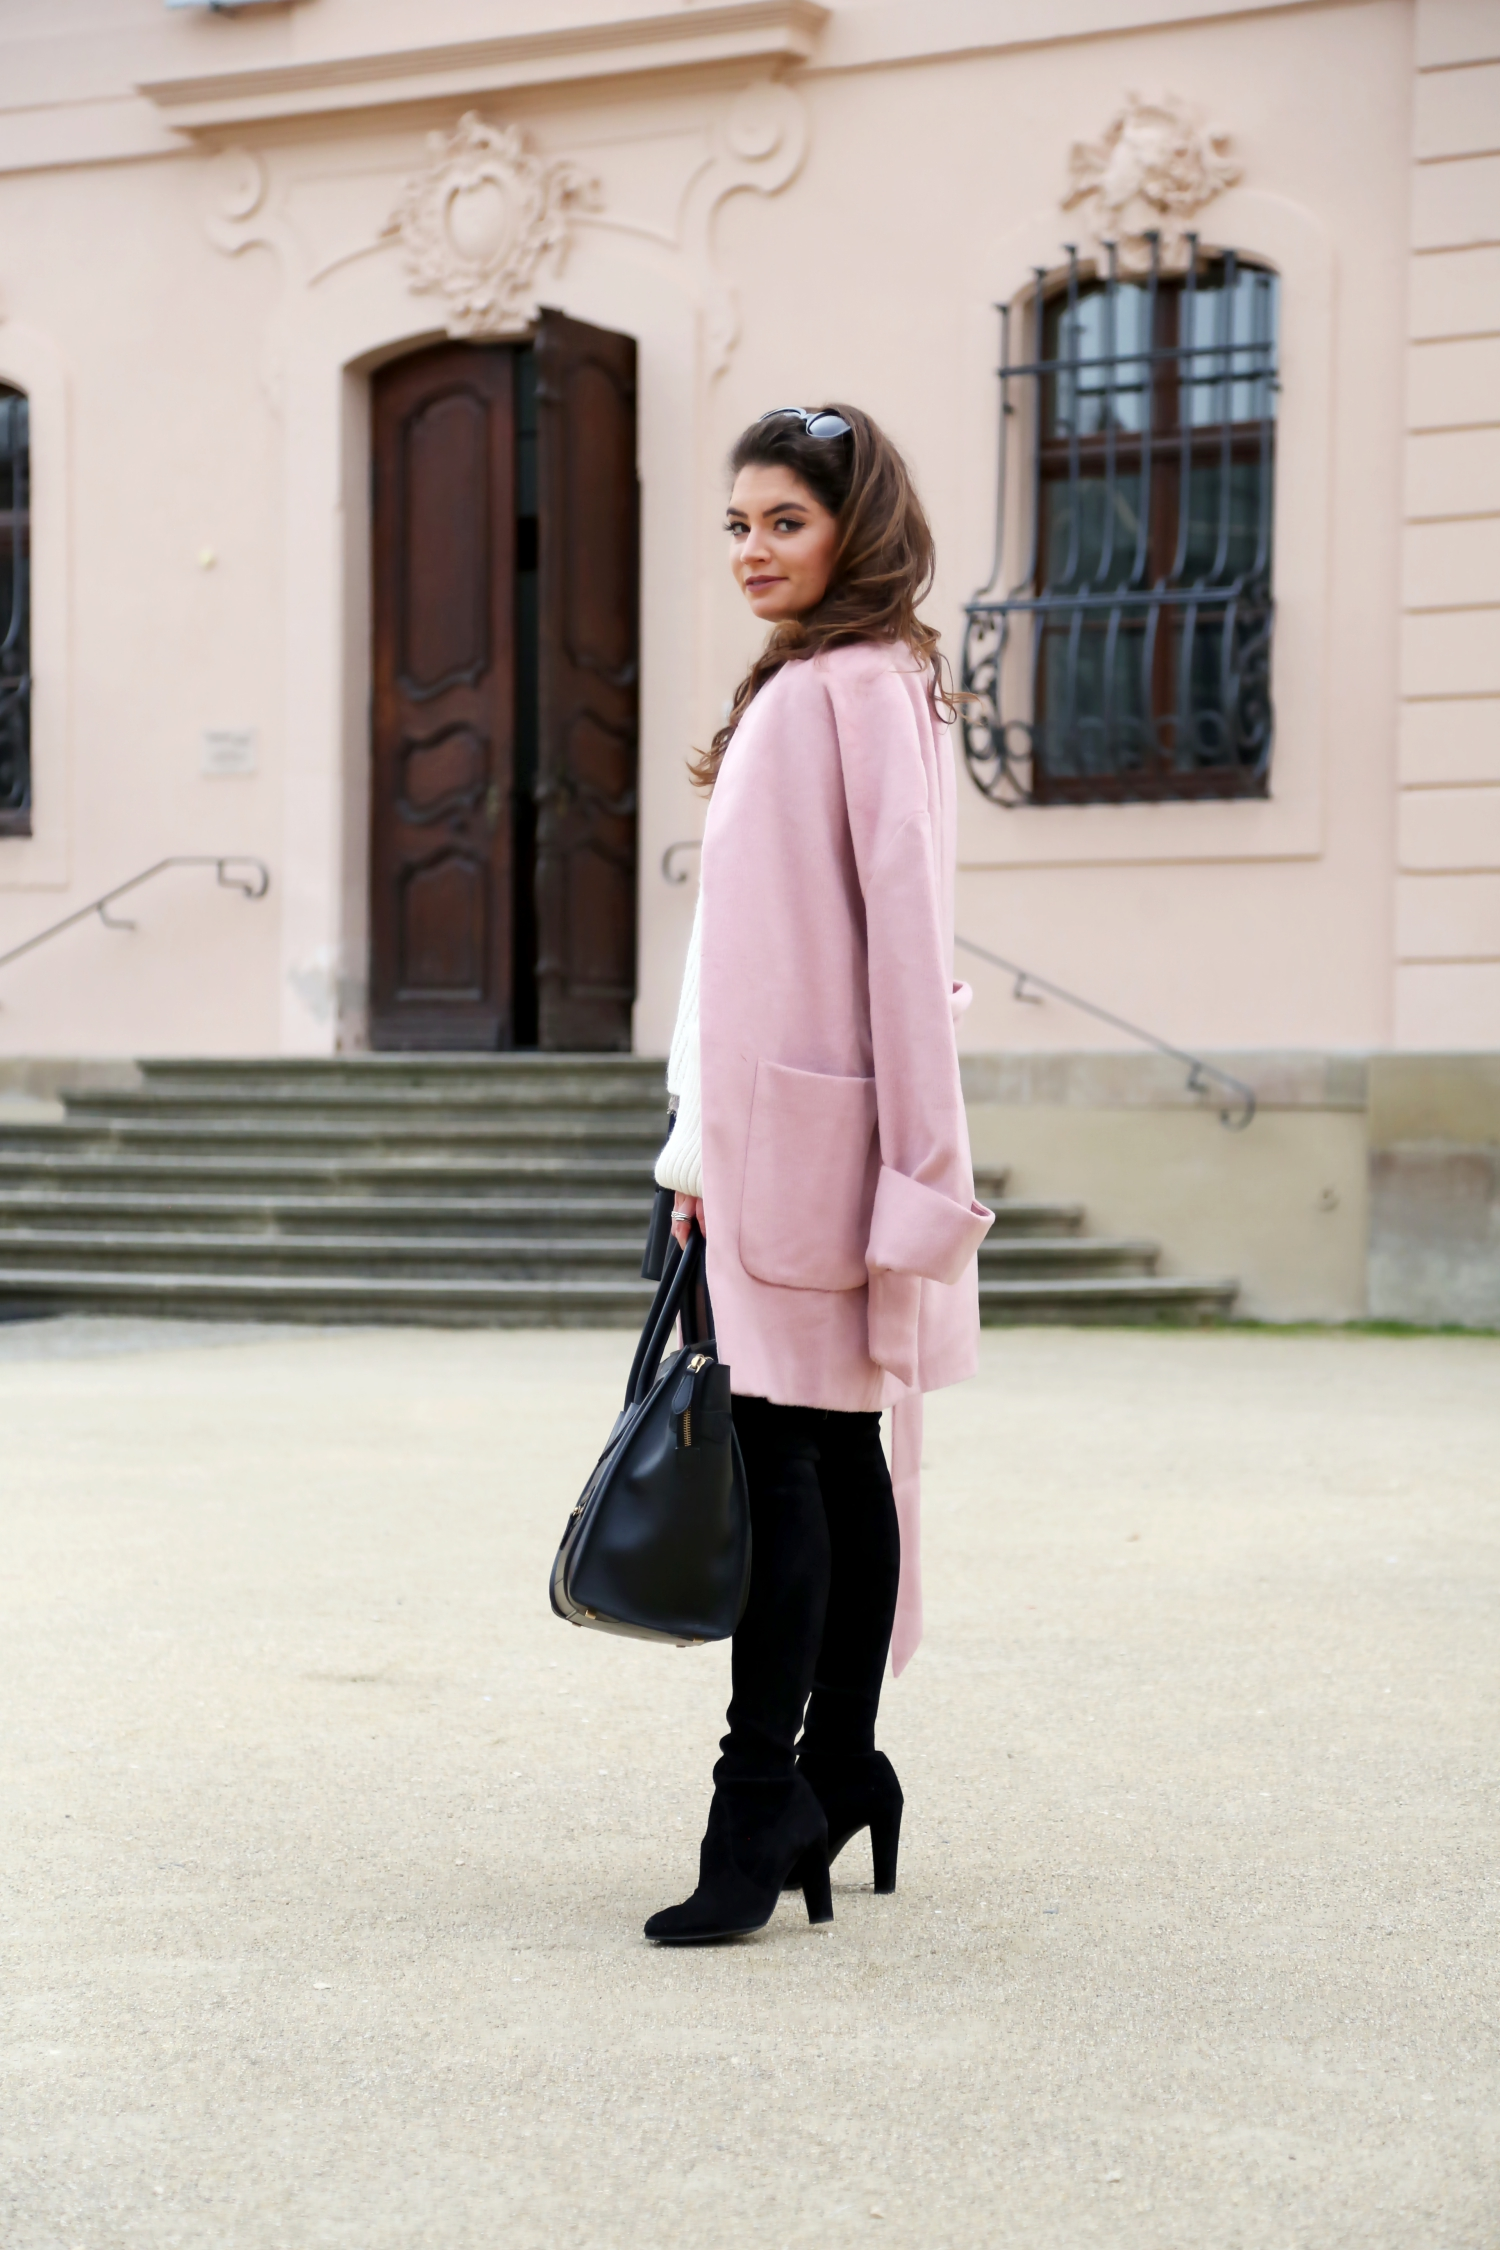 outfit-fall-herbst-german-fashionblogger-stuart-weitzman-overknees-edited-coat